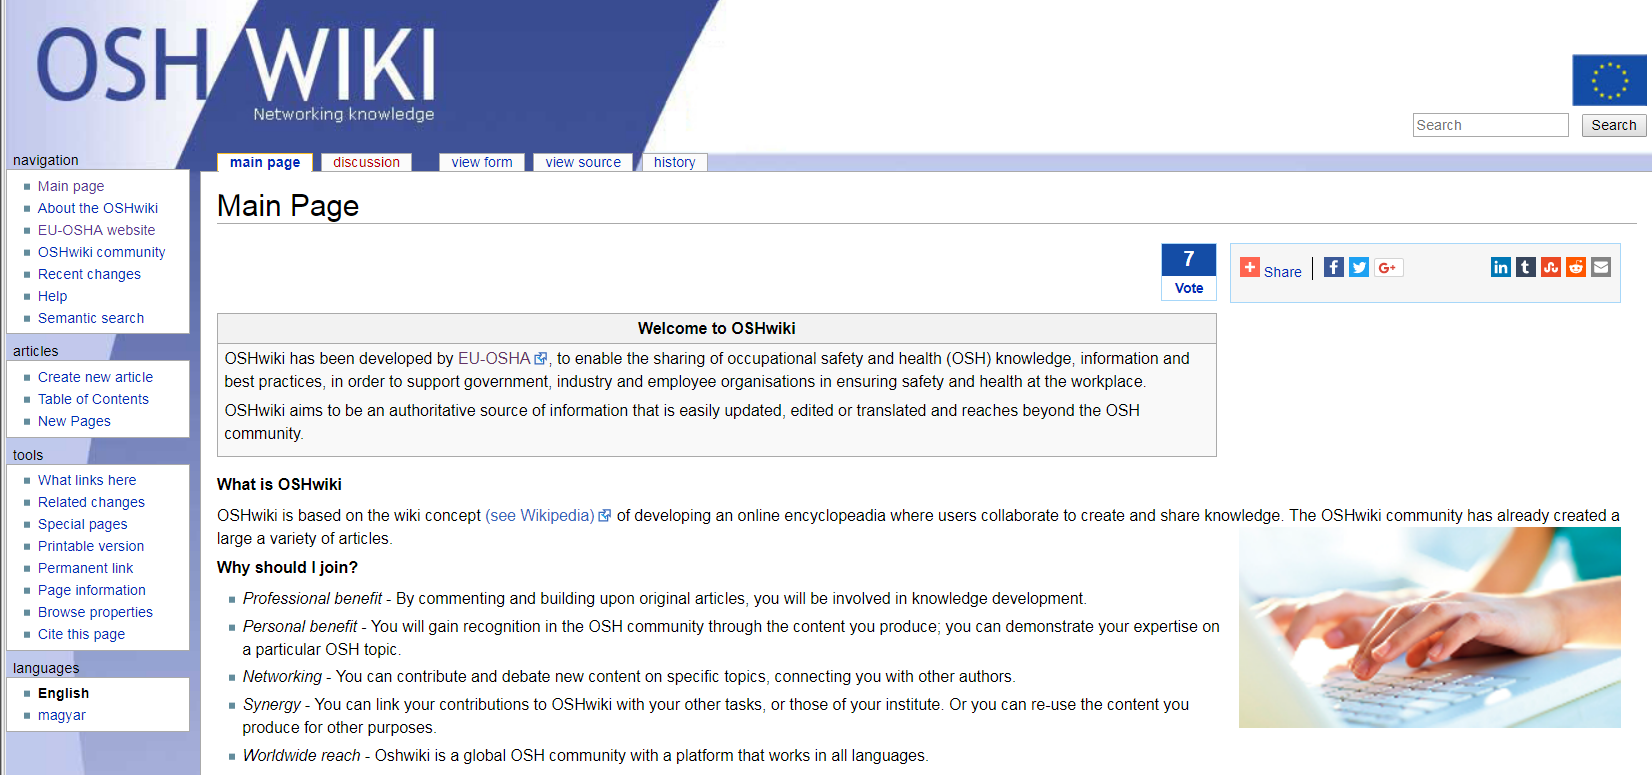 OSHwiki enables the sharing of occupational safety and health (OSH) knowledge, information and best practices